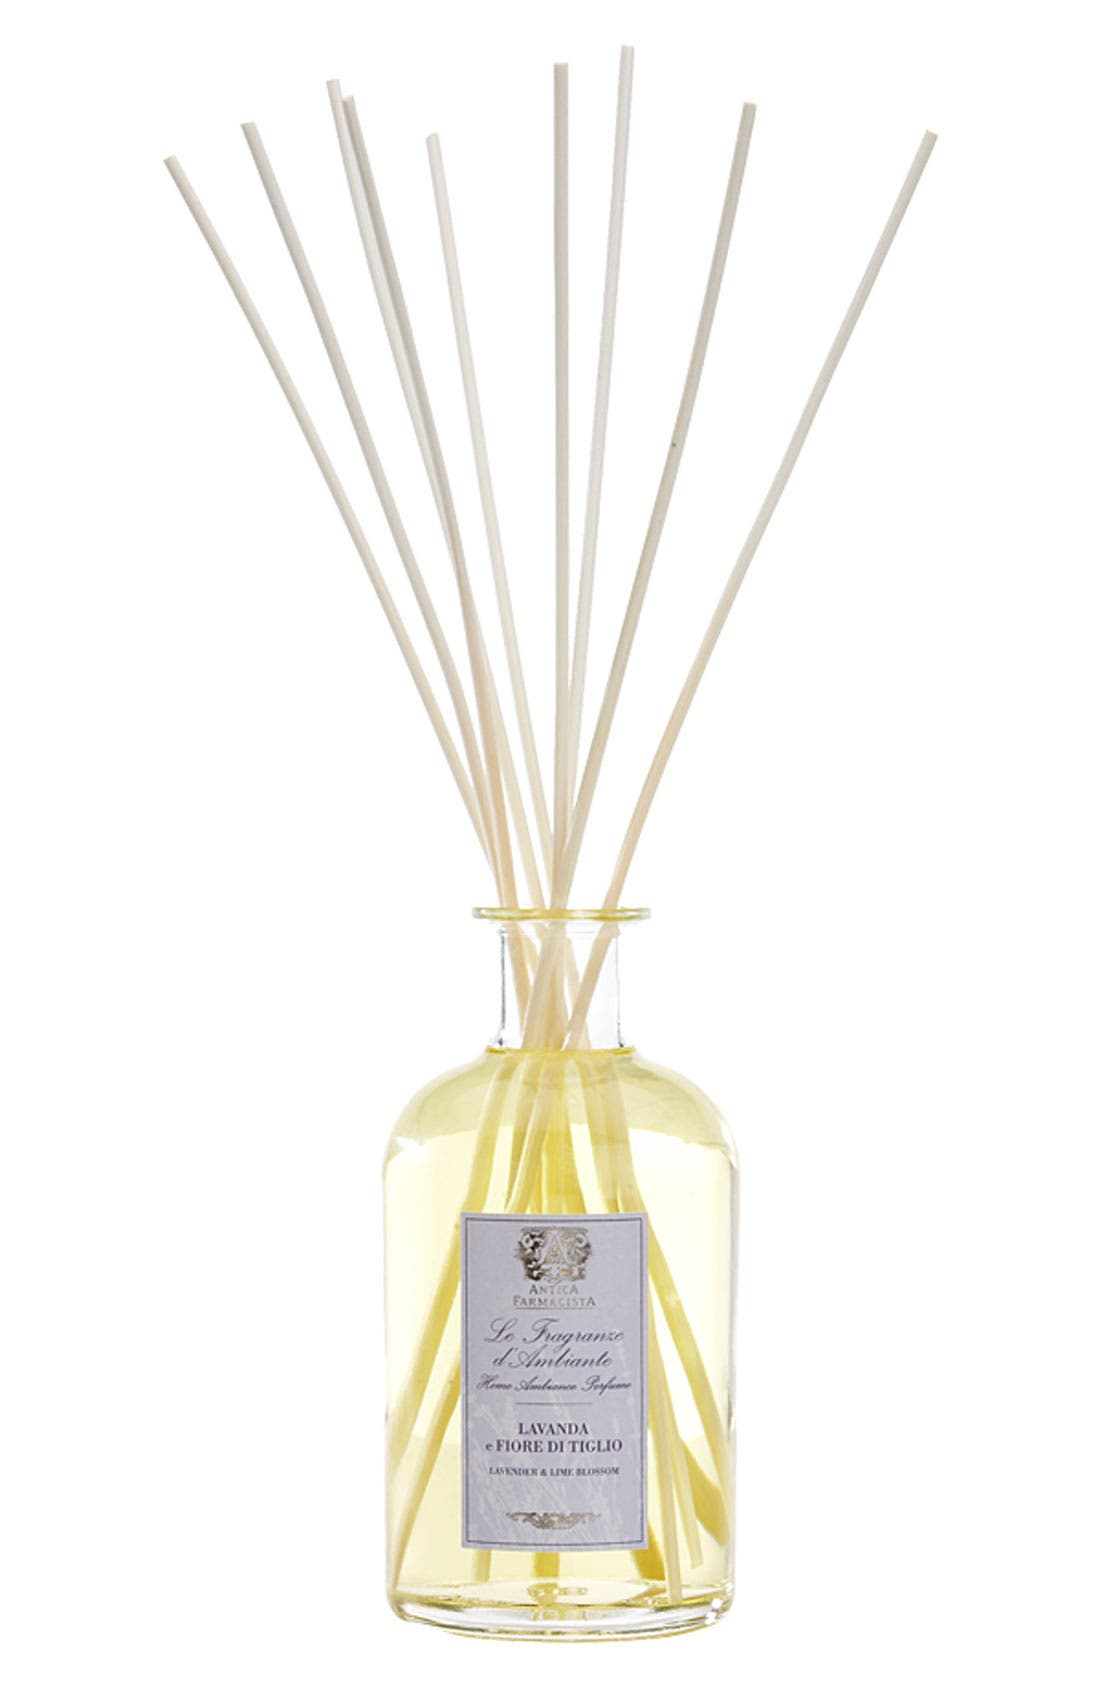 Alternate Image 1 Selected - Antica Farmacista Lavender & Lime Blossom Home Ambiance Perfume